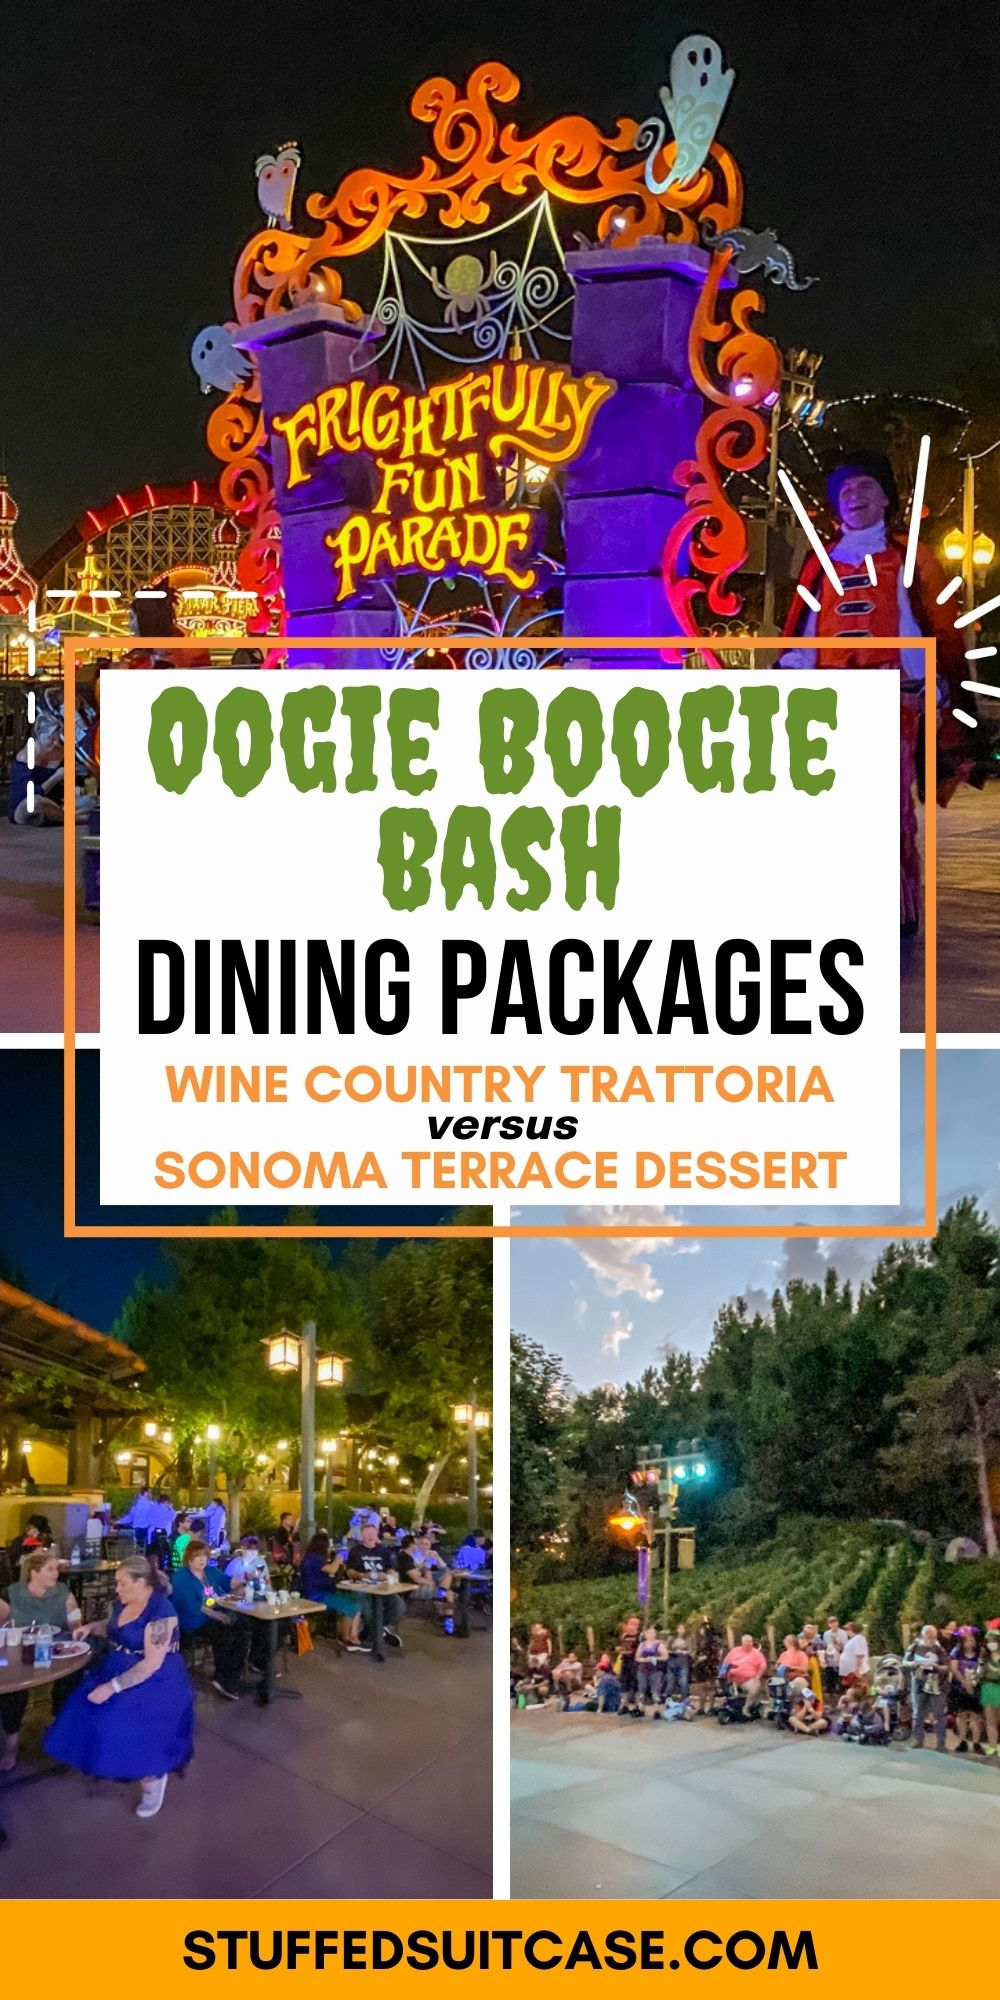 oogie boogie bash parade dining packages seating area and parade float collage with text